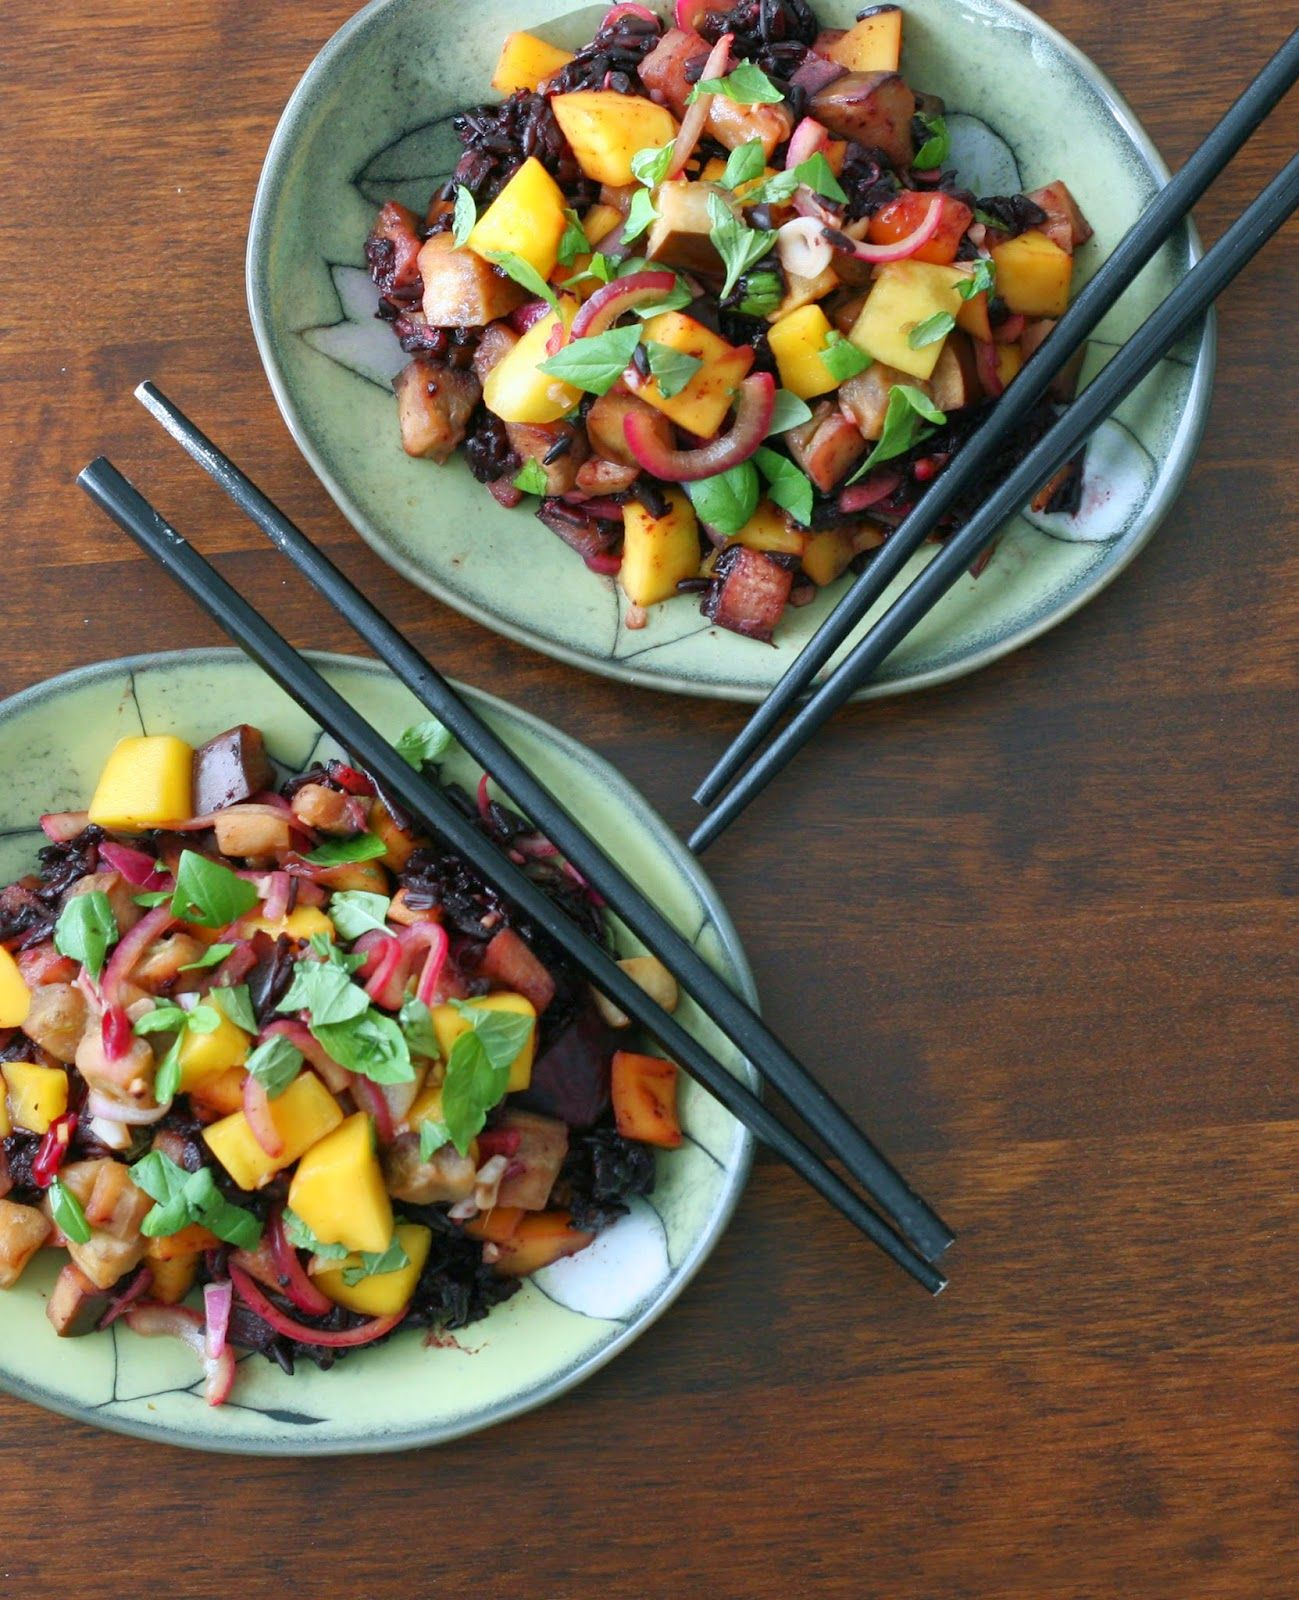 South East Asian black rice, eggplant and mango salad with zesty lime ginger dressing. Vegan, gluten-free - by Maikin mokomin